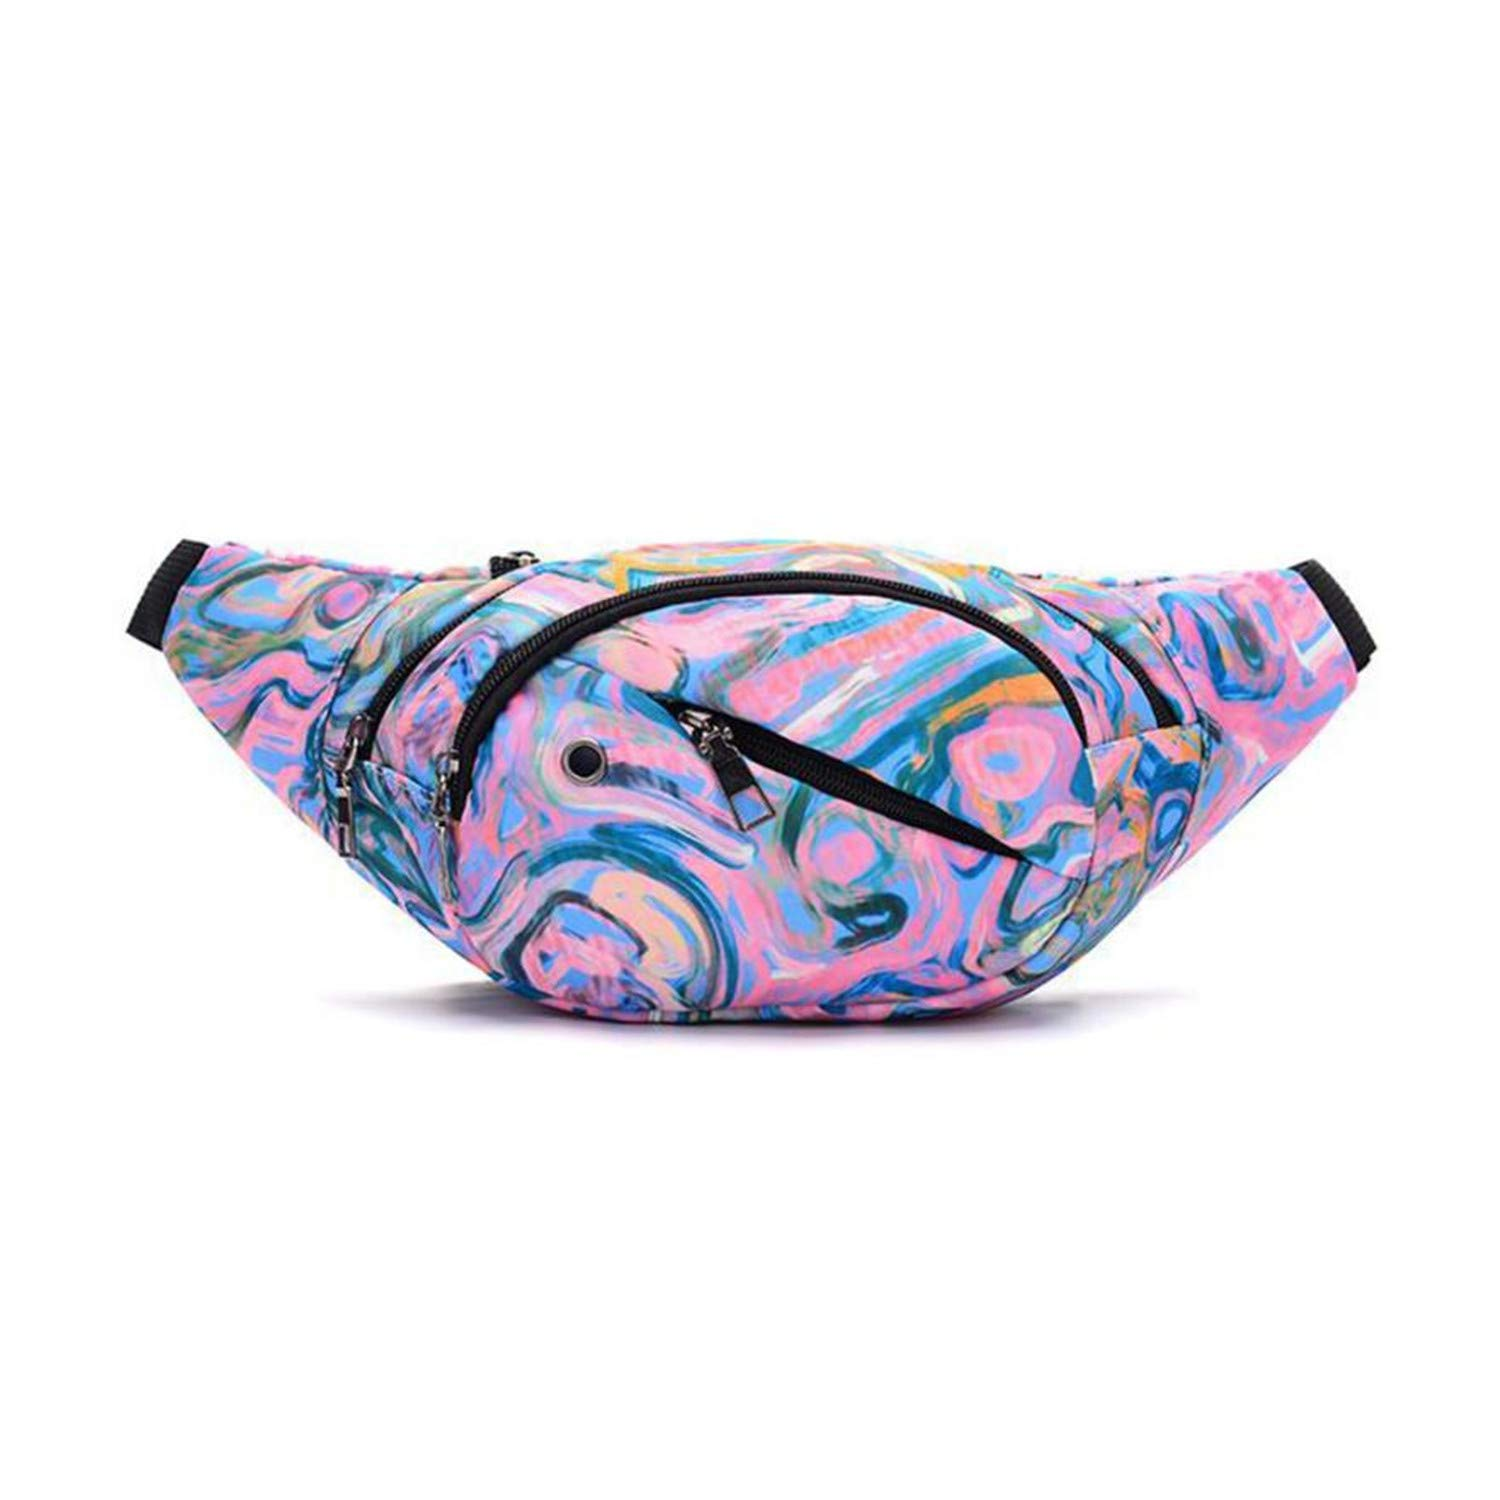 Amazon.com: Fanny Pack Women Waist Bag Women Shouler Bag ...